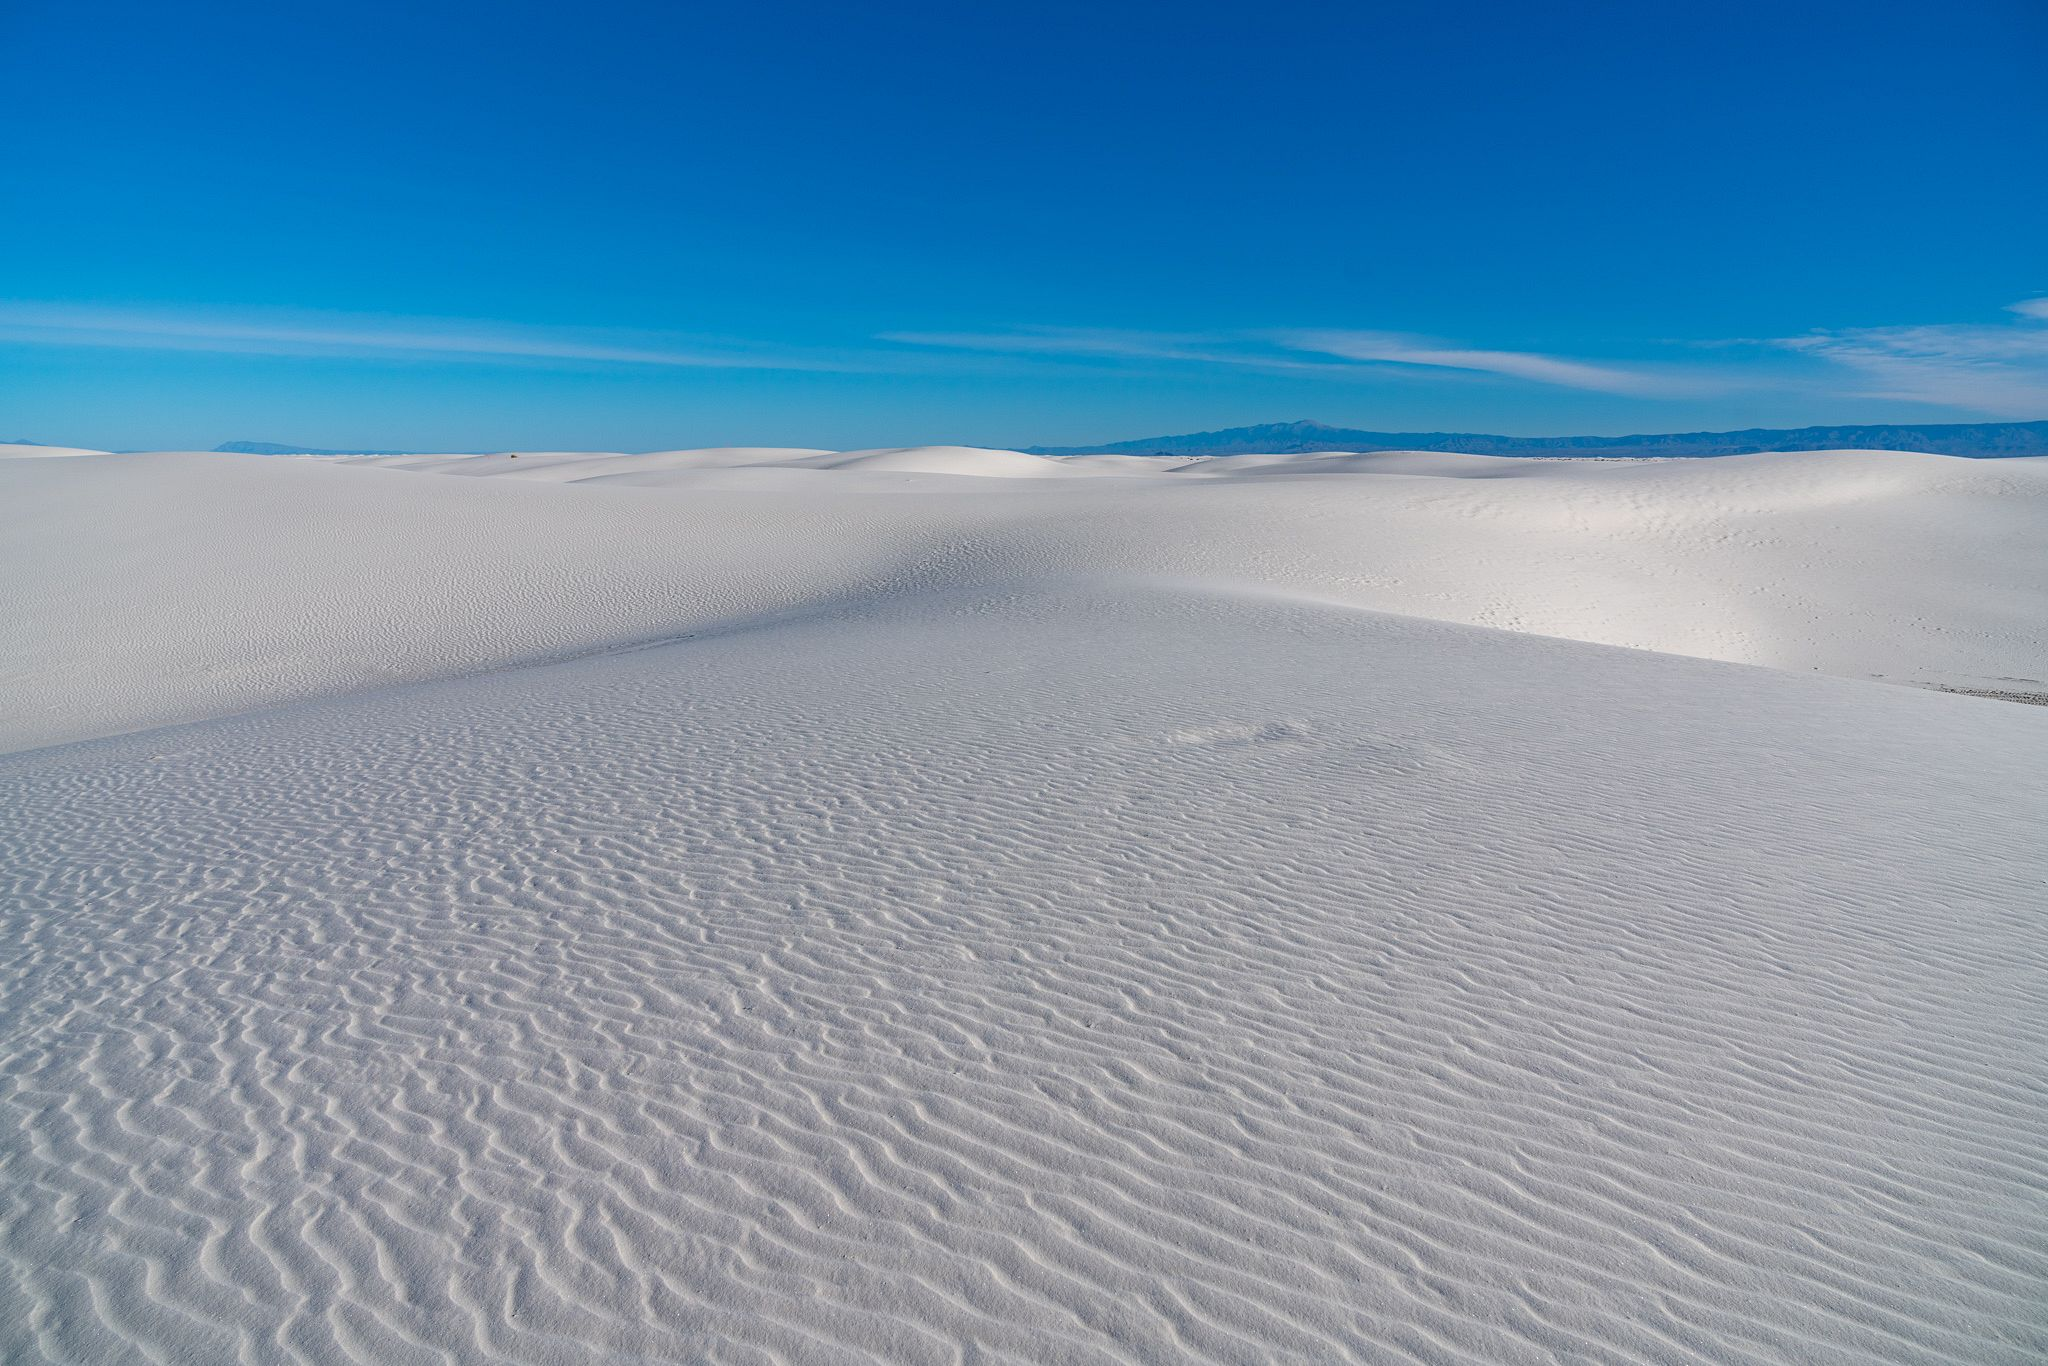 Blue Skies & White Sands